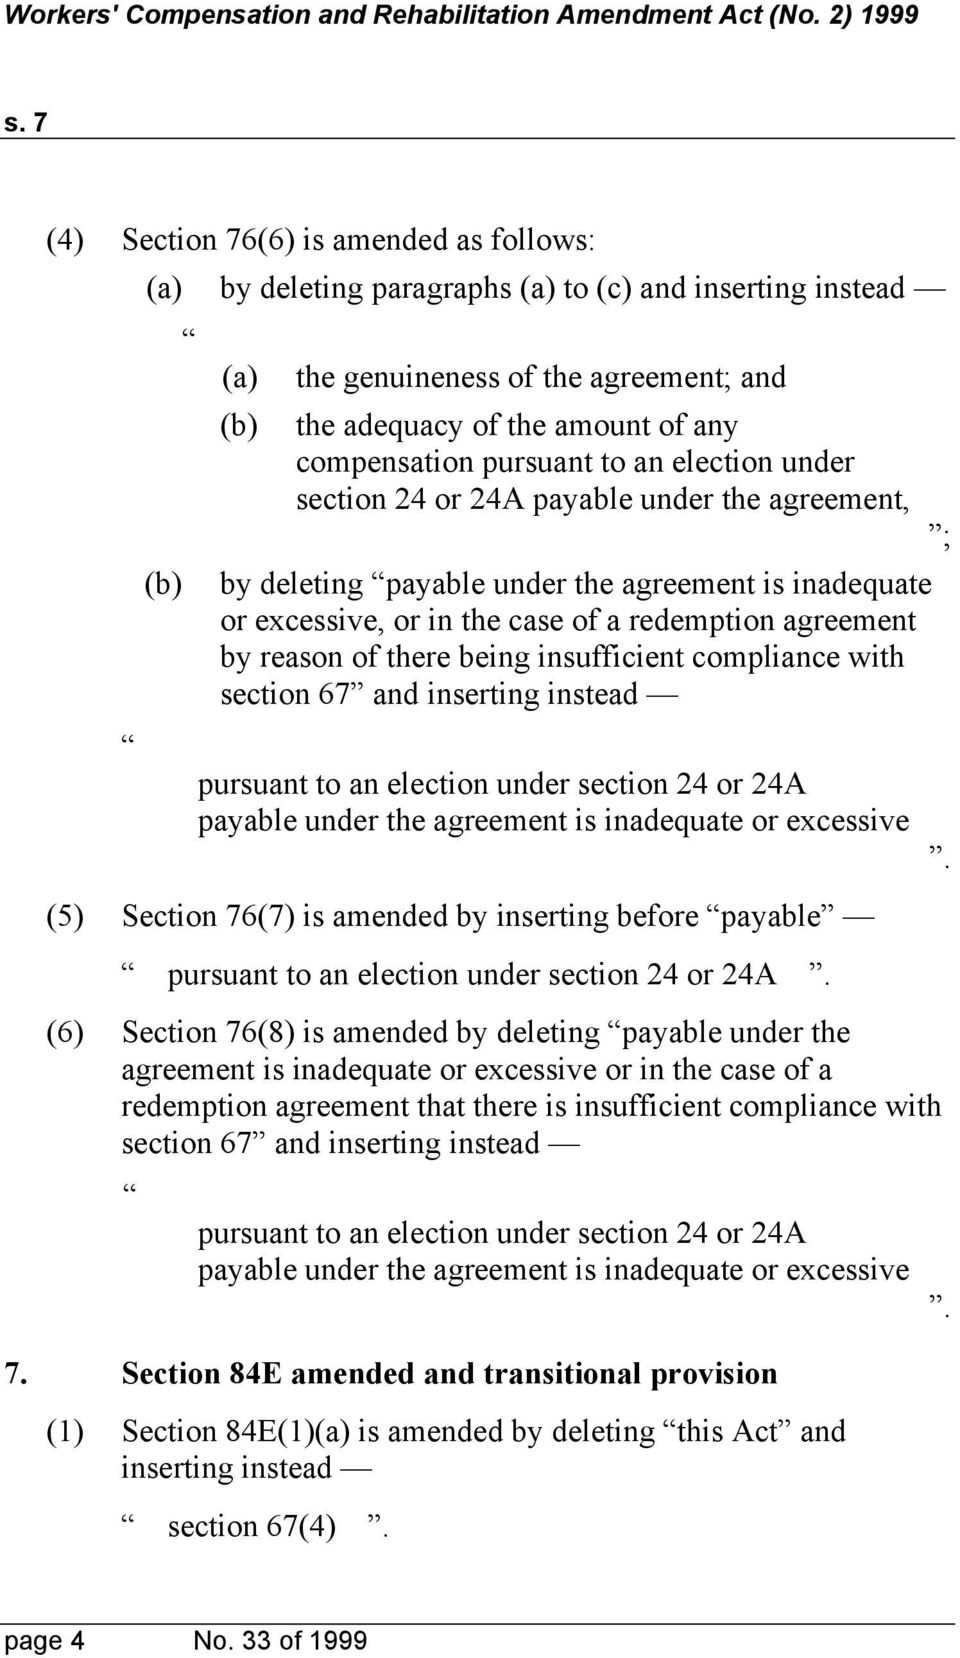 there being insufficient compliance with section 67 and inserting instead pursuant to an election under section 24 or 24A payable under the agreement is inadequate or excessive (5) Section 76(7) is